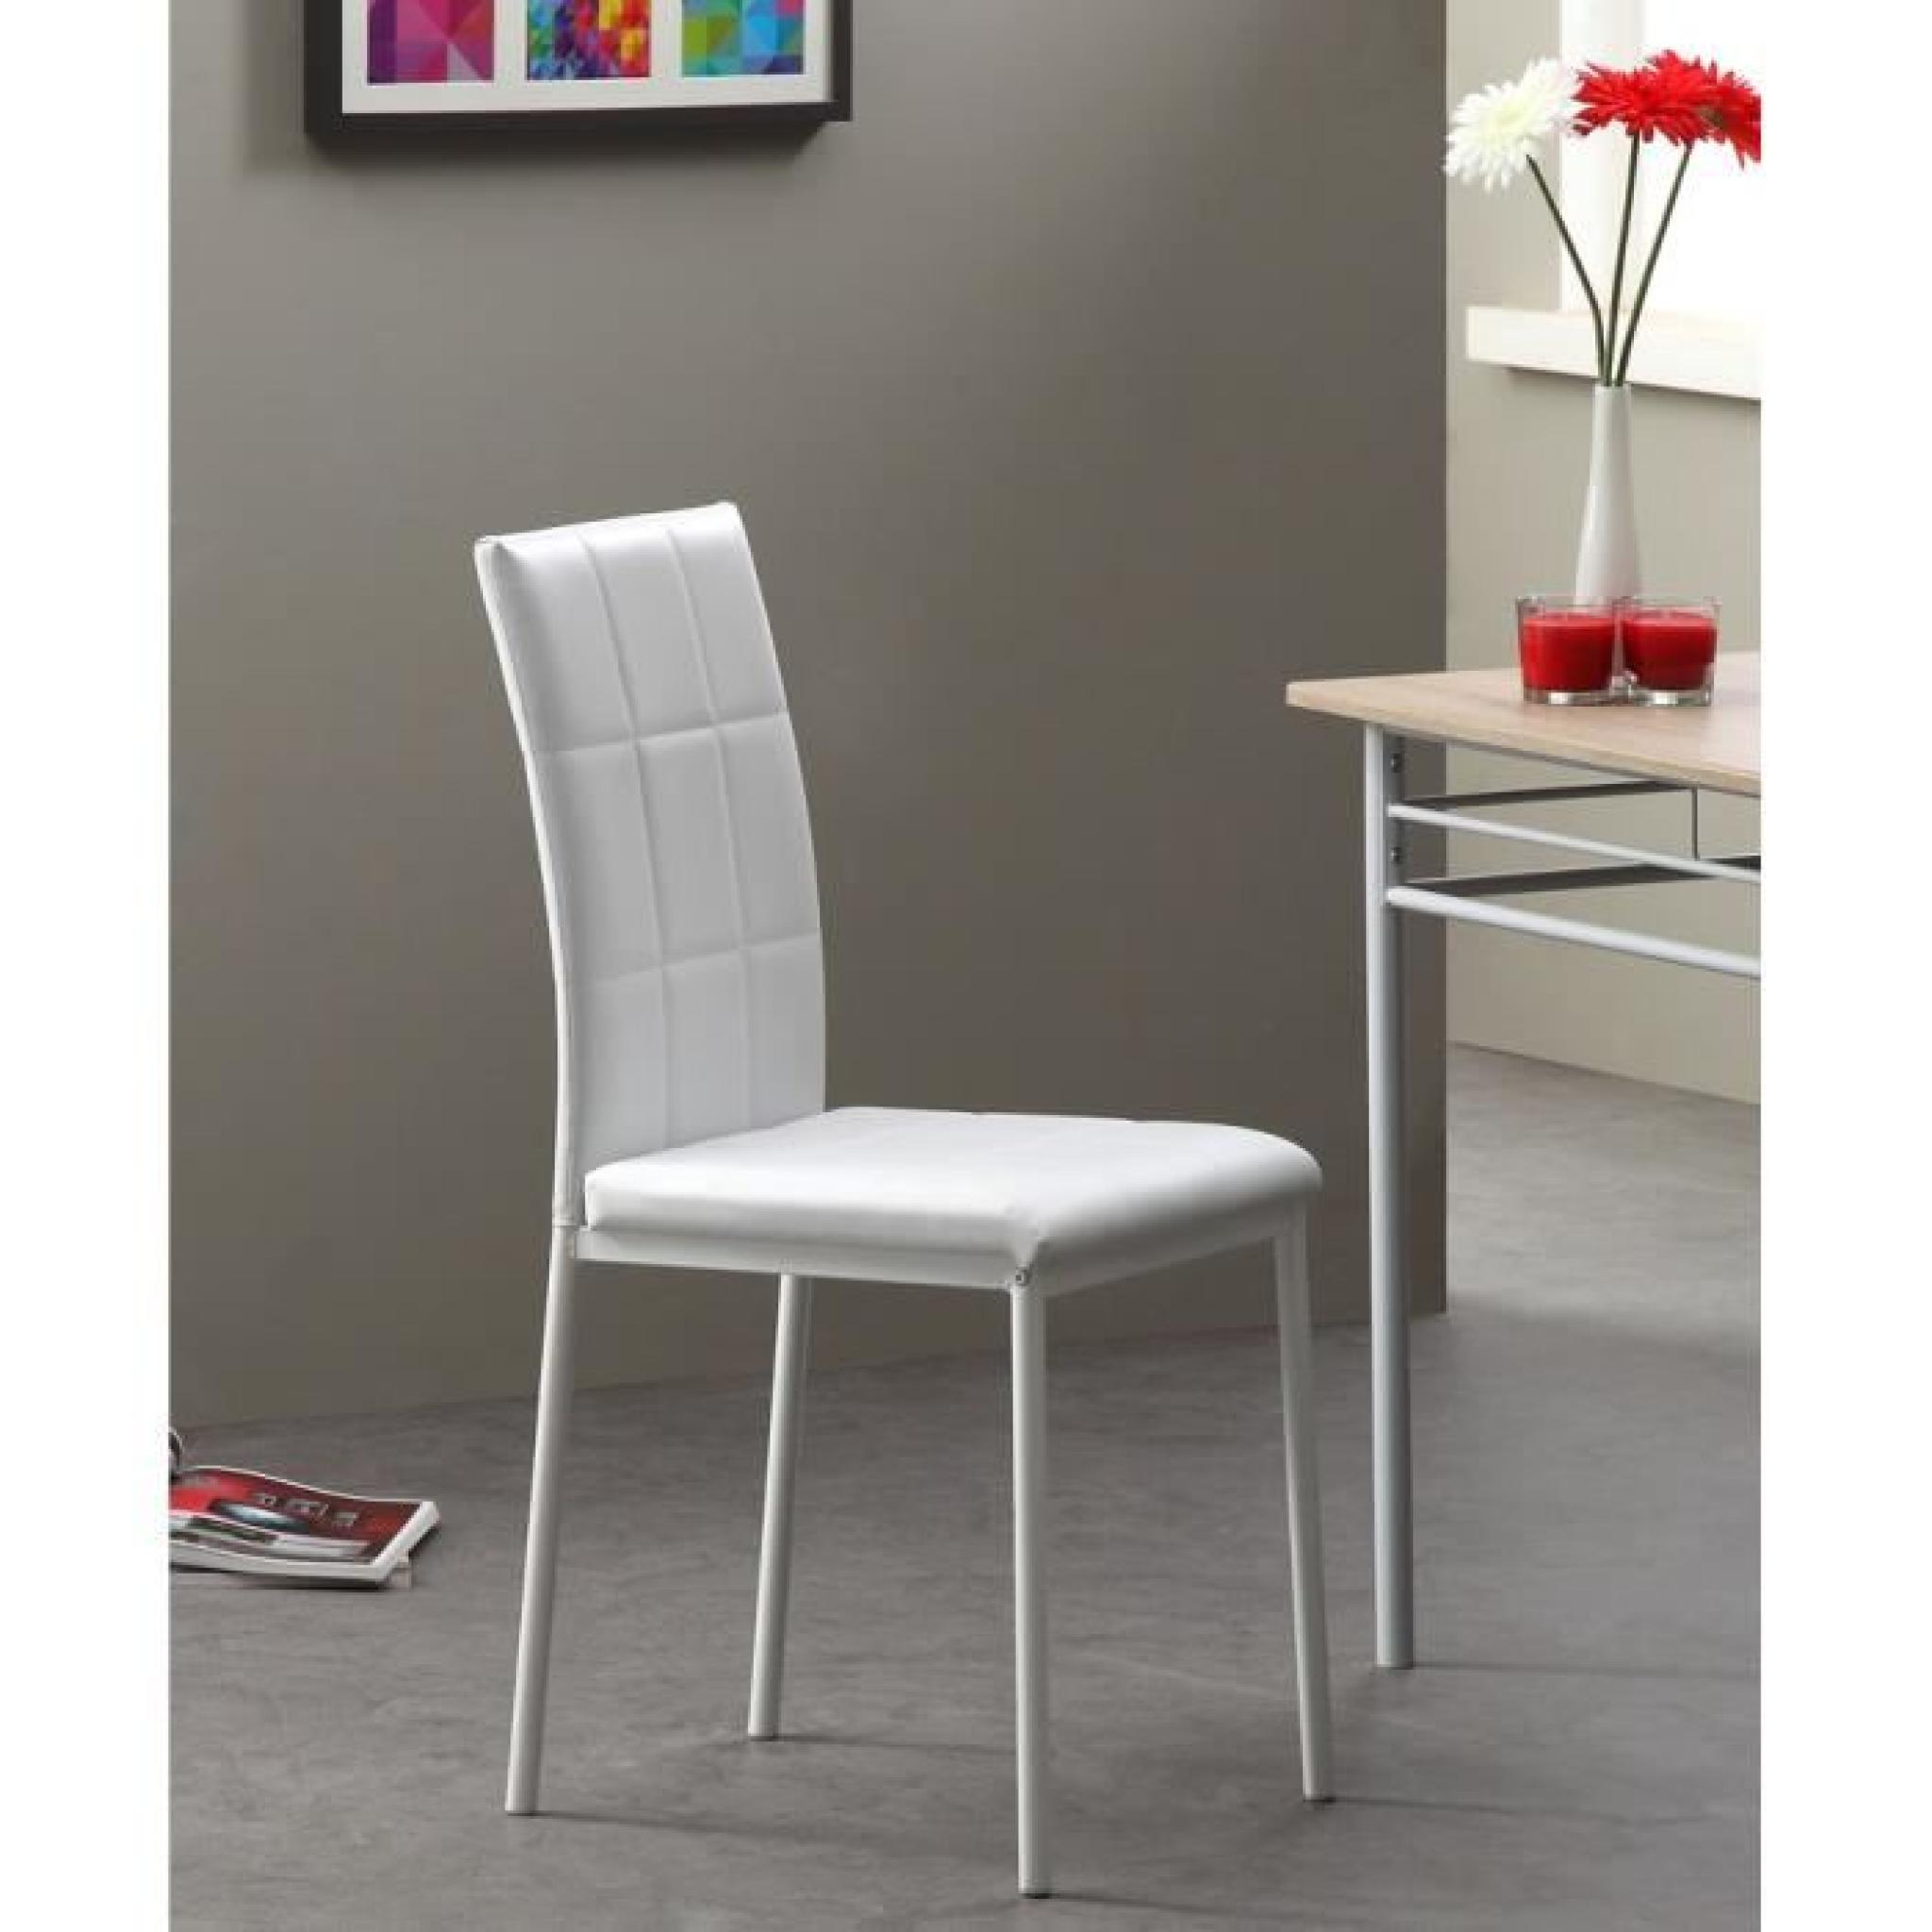 Chaise salle a manger pas cher lot de 4 maison design for Lot de 6 chaise salle a manger